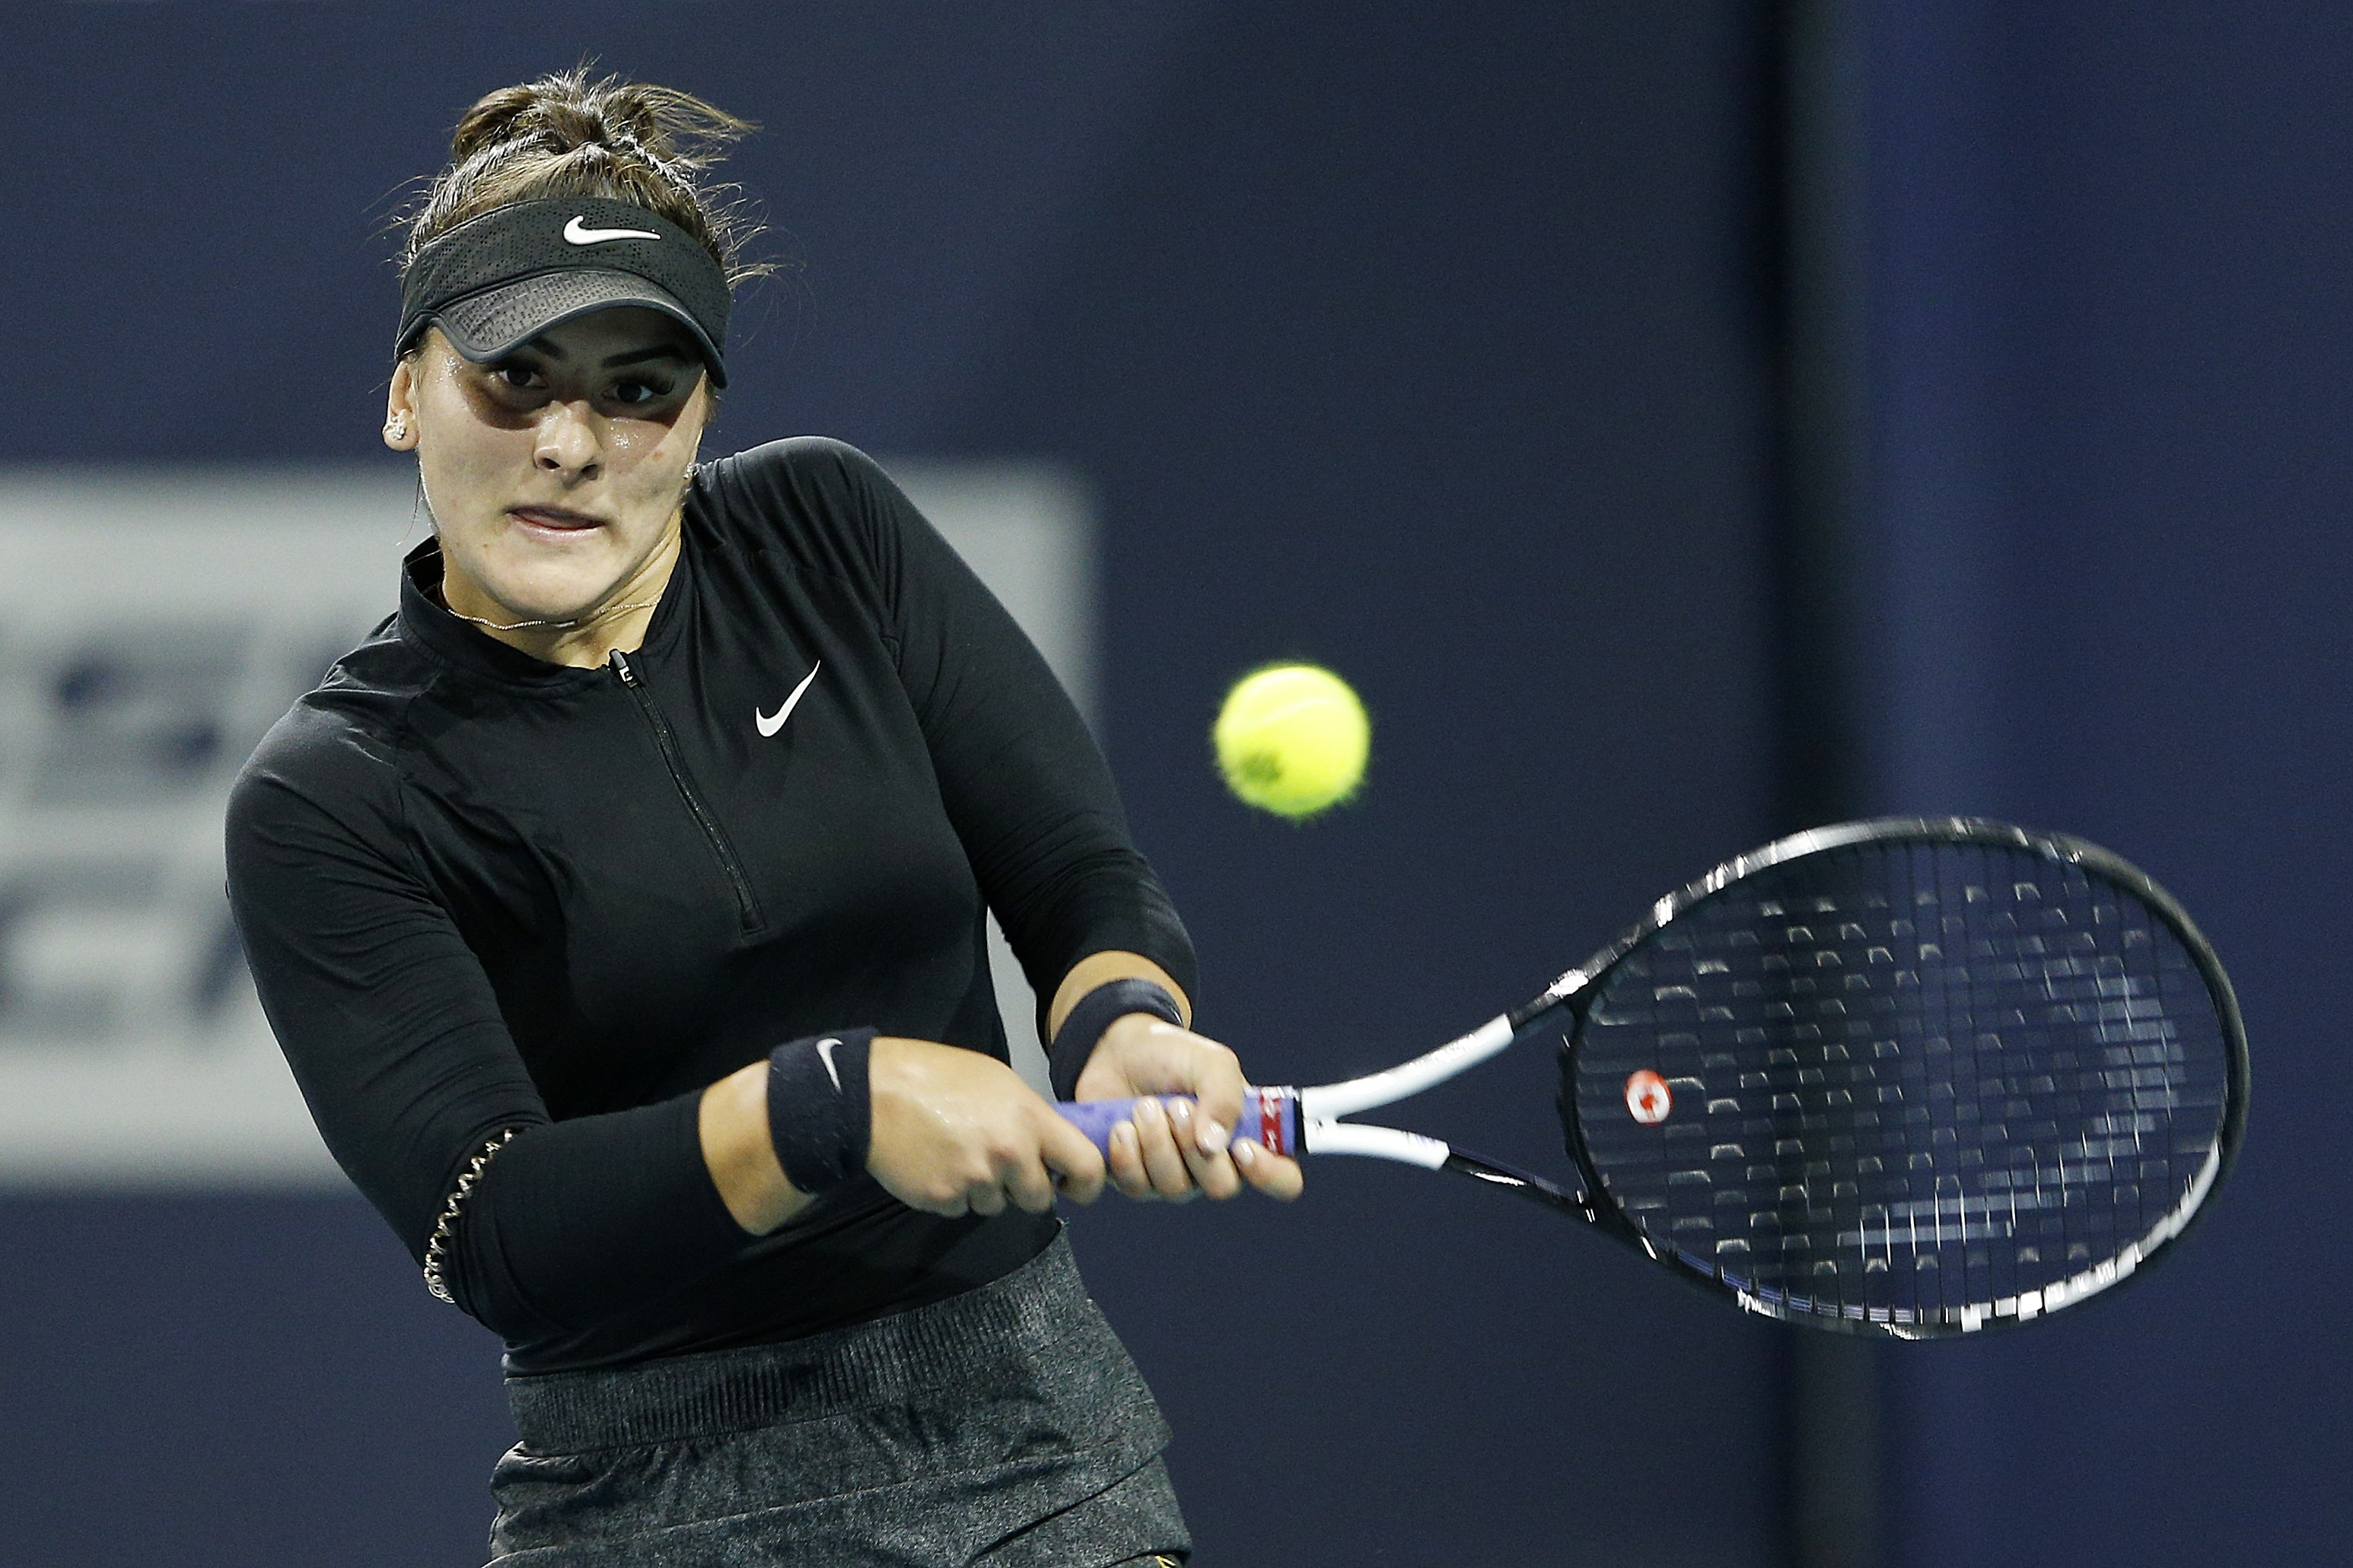 024d81b9f Canada s Bianca Andreescu  the down to earth Drake fan taking women s tennis  by storm after Indian Wells win and WTA rise